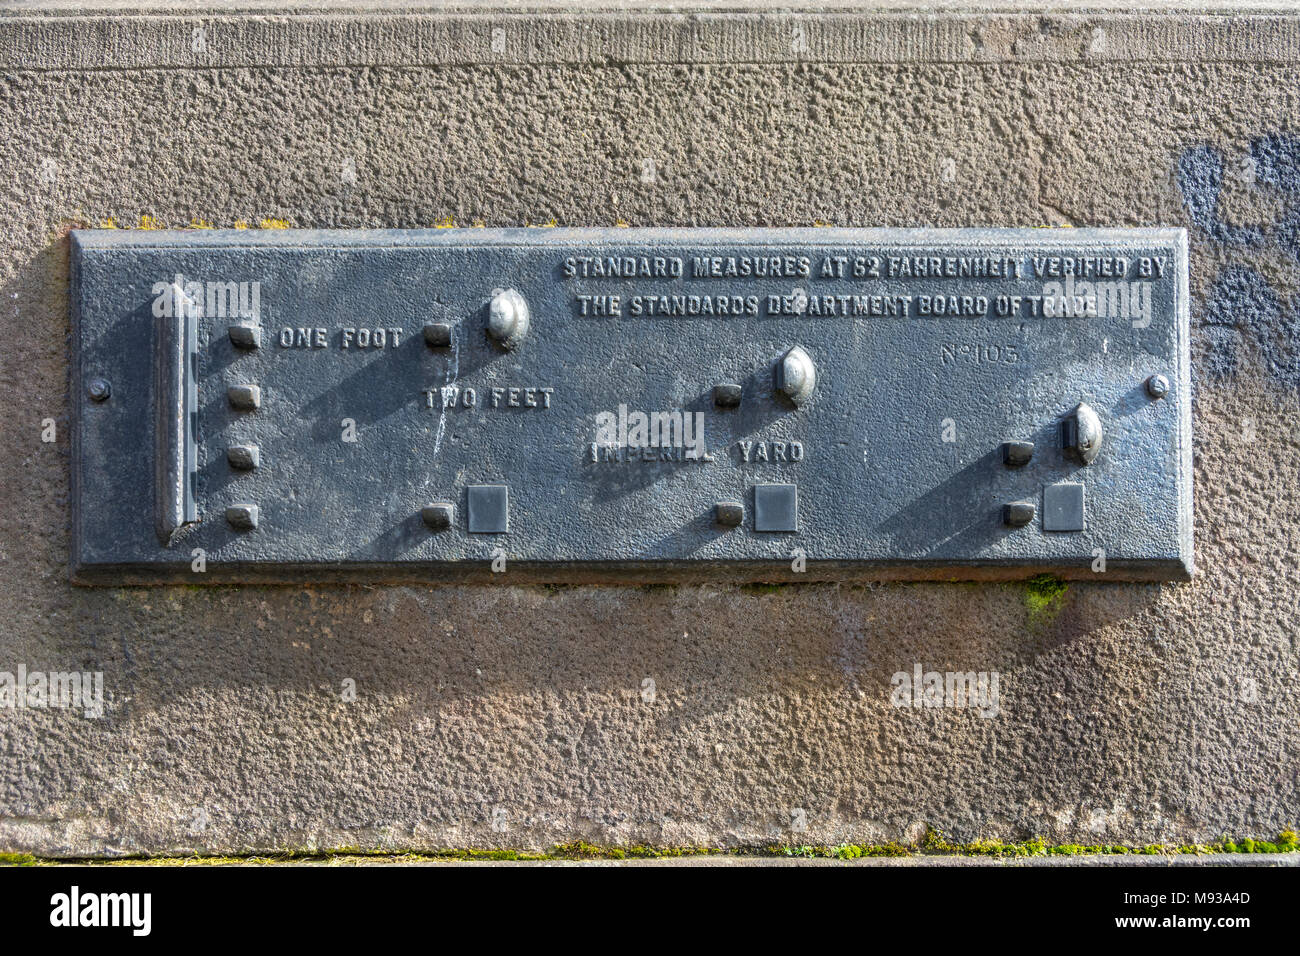 Standard Measures gauge, one foot, two feet and one yard.  St. George's Quarter, Liverpool, England, UK - Stock Image